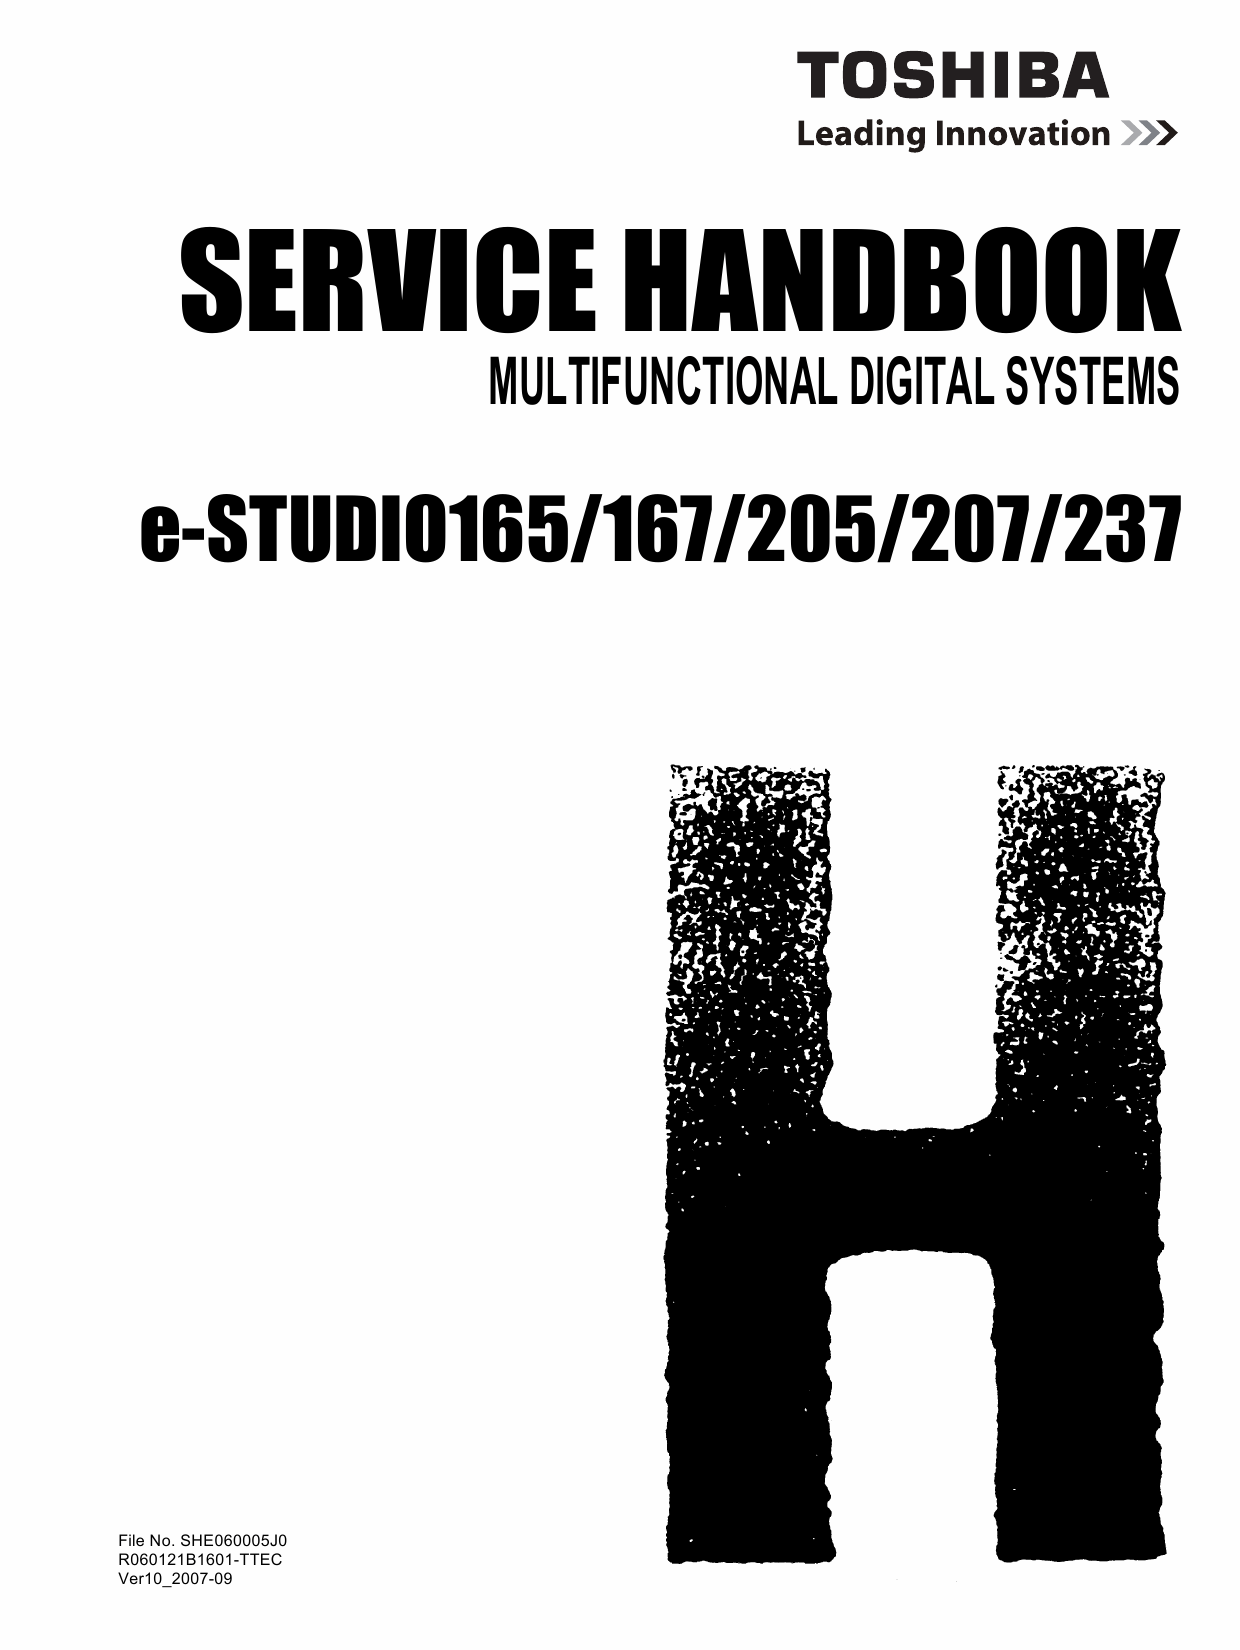 TOSHIBA e-STUDIO 165 167 205 207 237 Service Manual